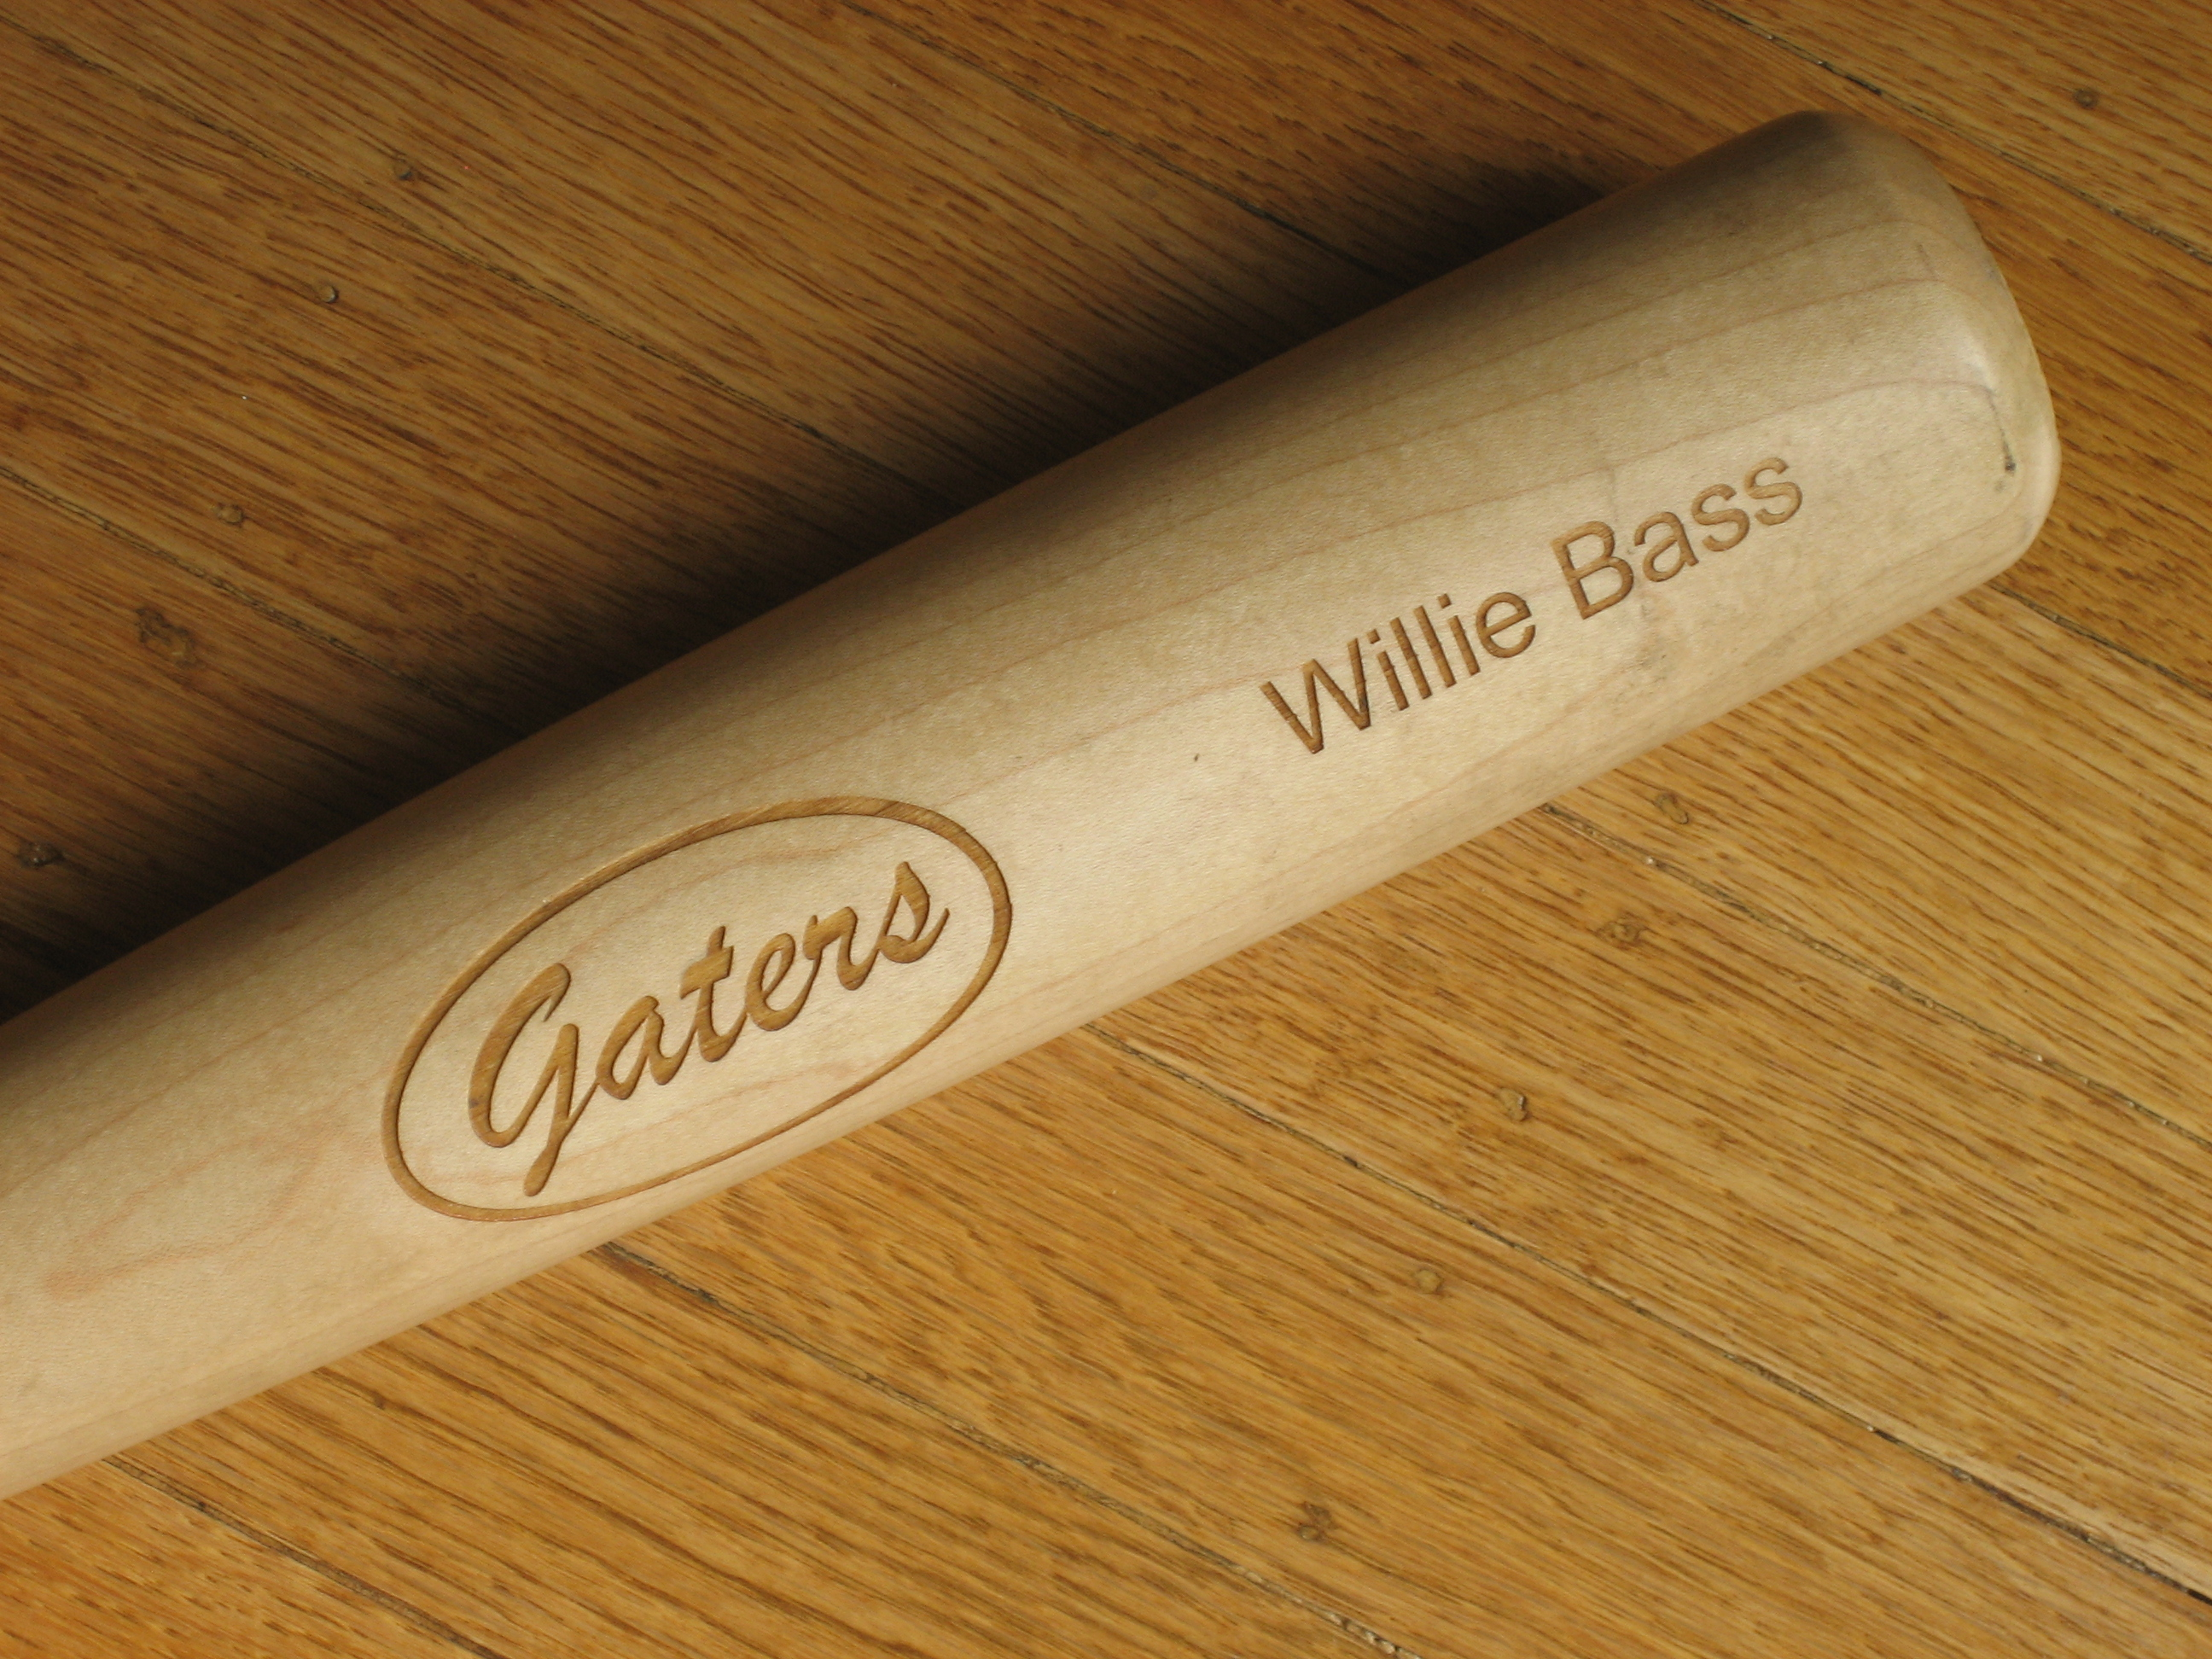 Turning a Baseball Bat: 15 Steps (with Pictures)